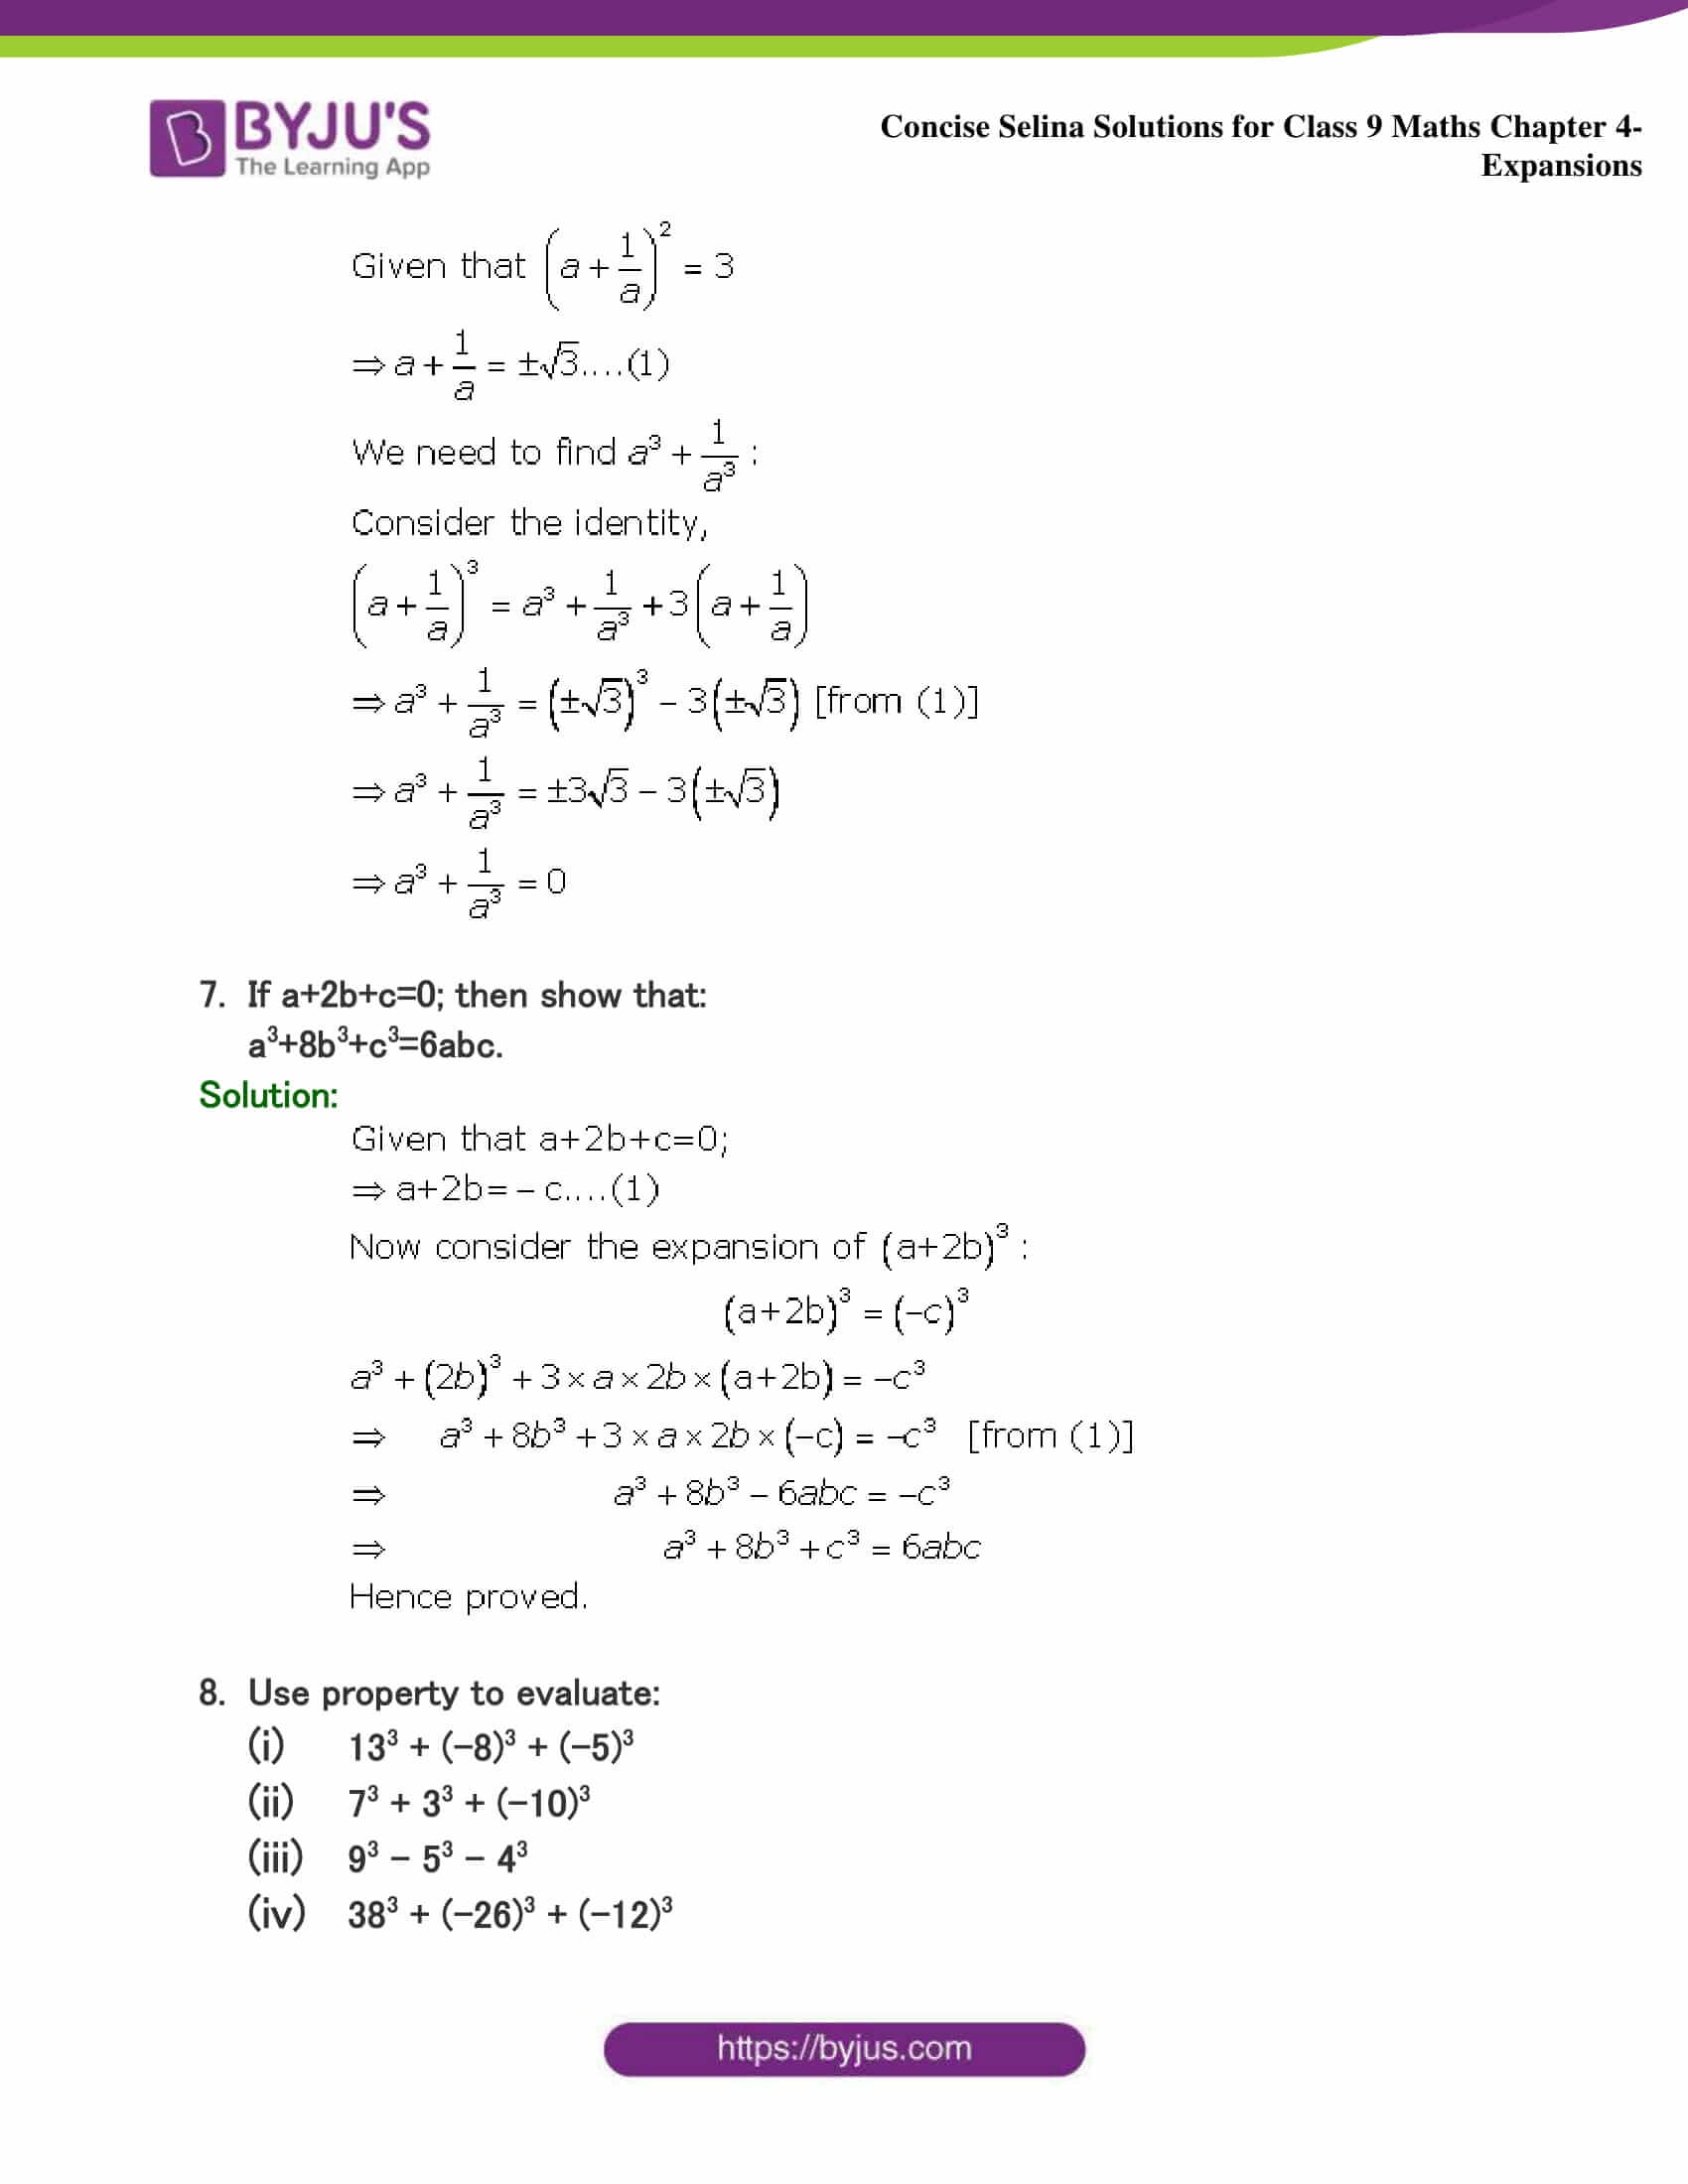 Selina Solutions Class 9 Maths Chapter 4 Expansions part 20